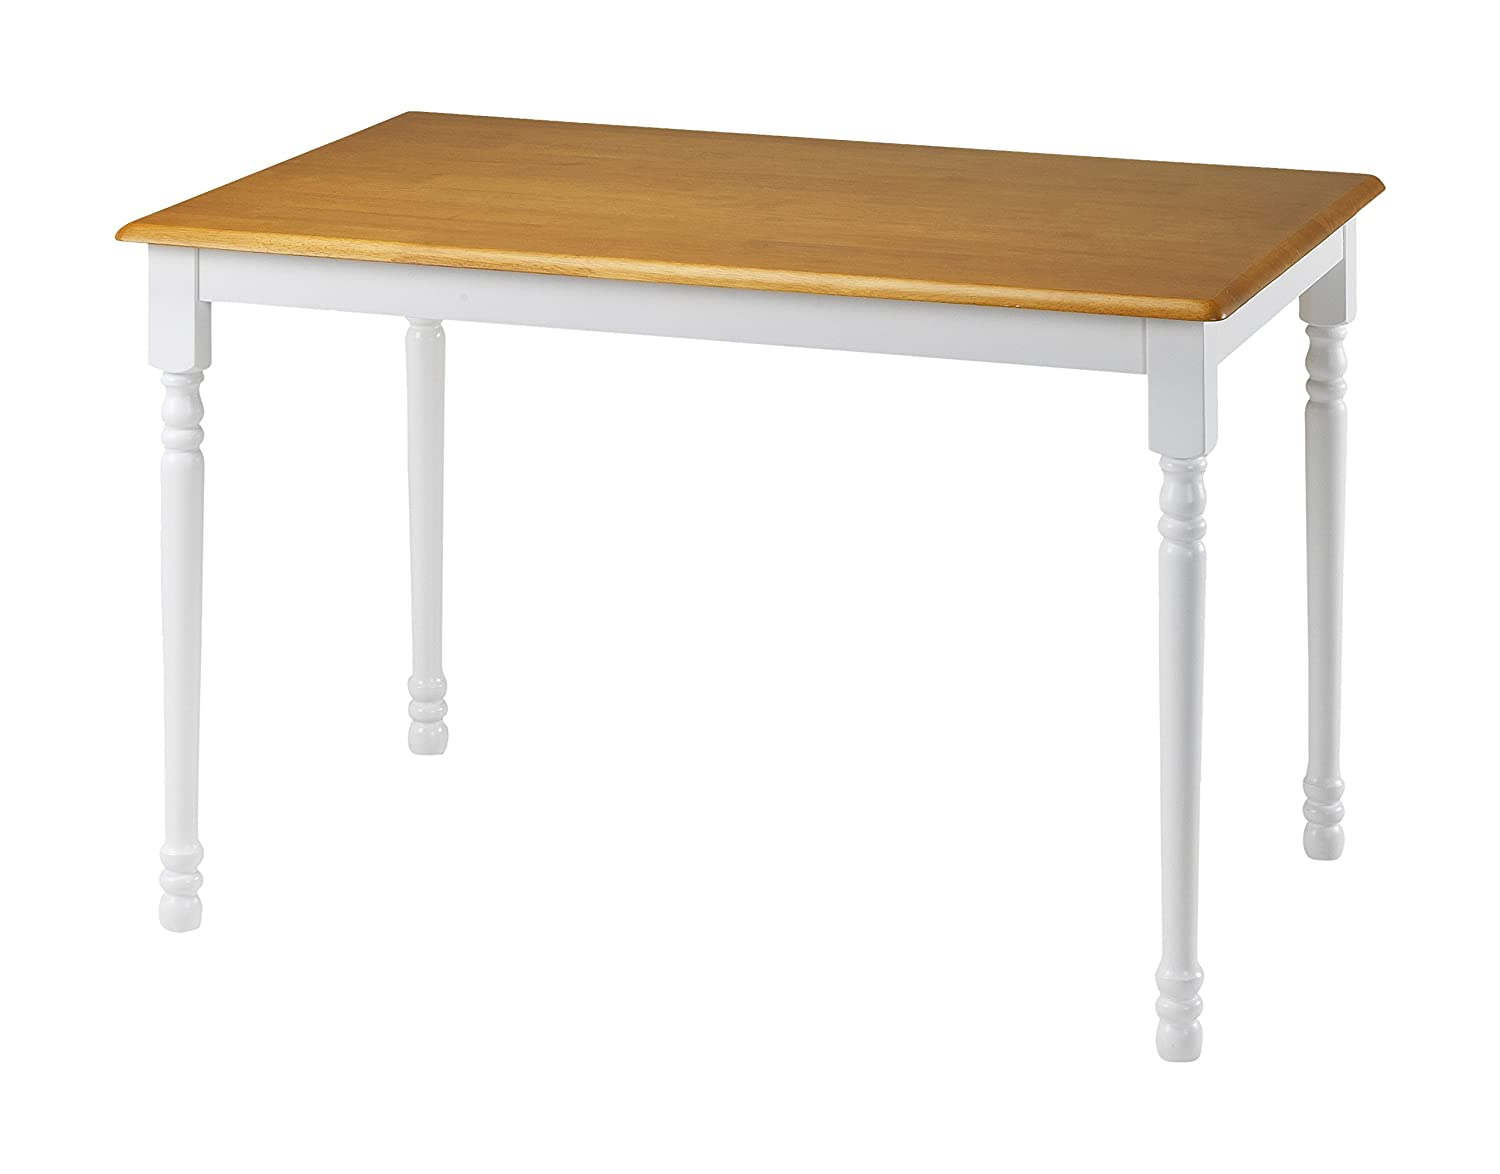 Indoor 4 seat dining table sturdy modern kitchen small for Rectangular dining tables for small spaces